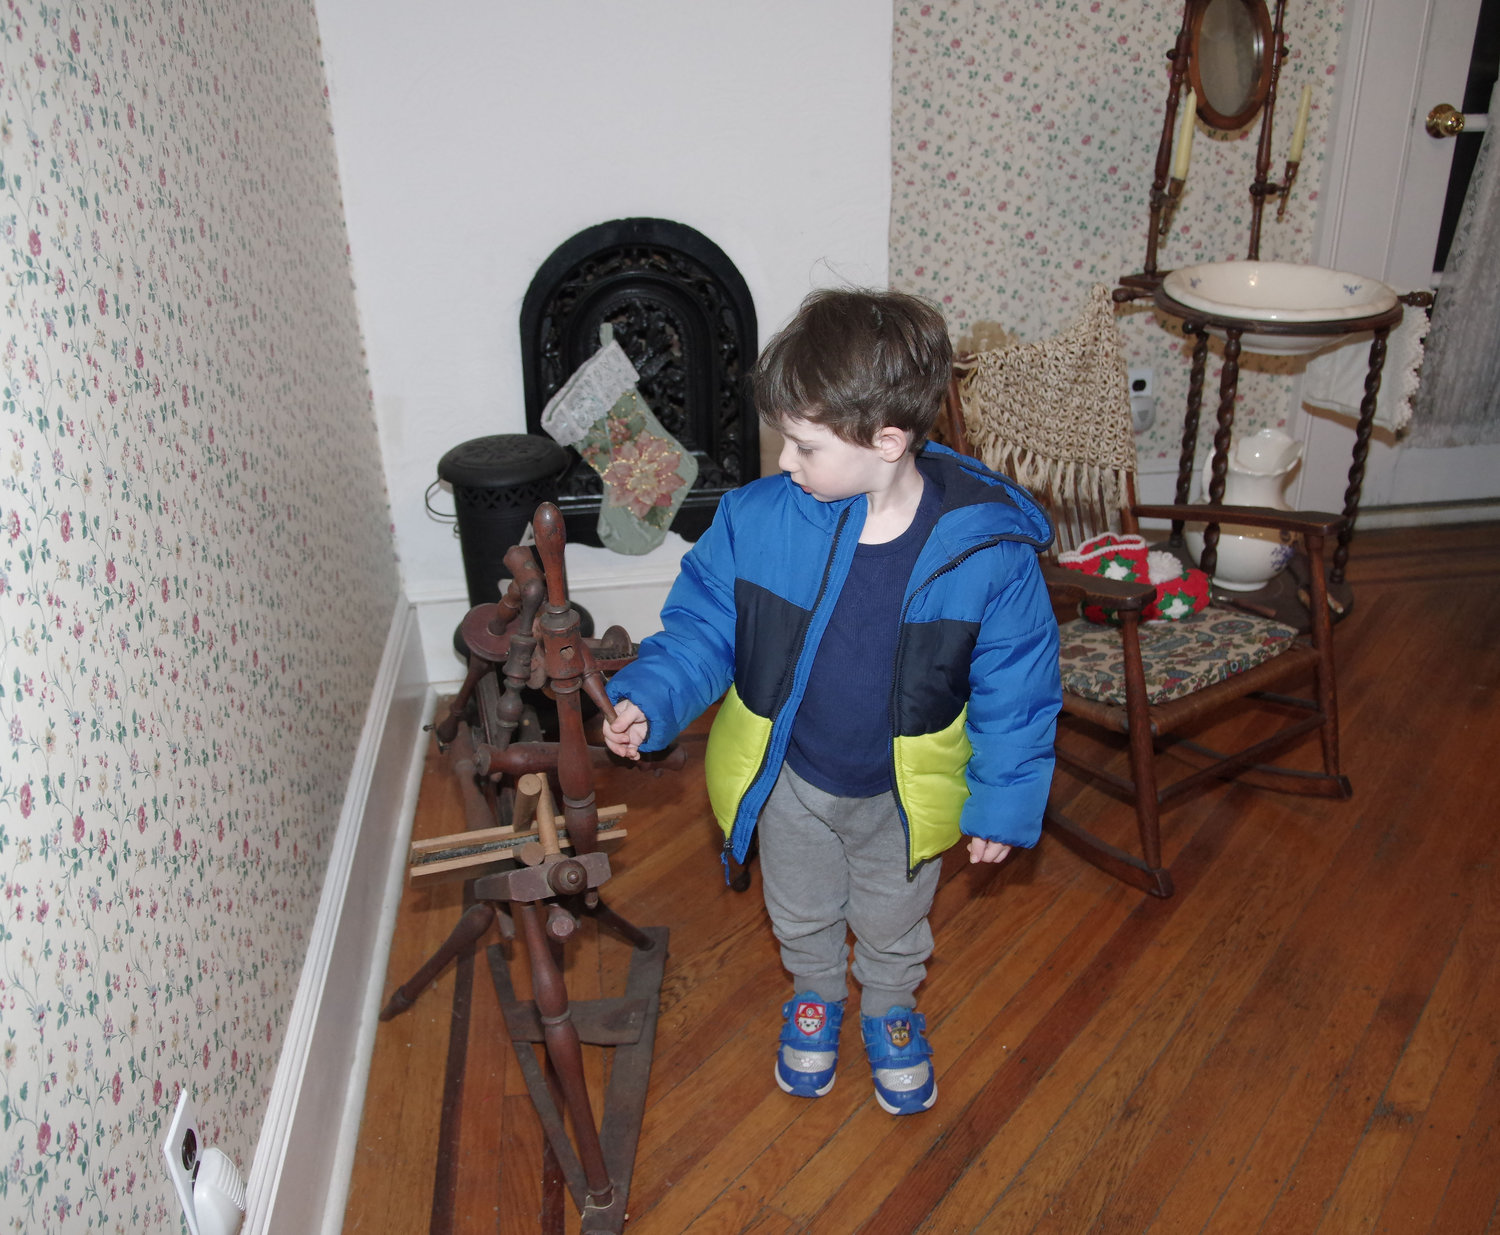 Three-year-old Elliott Goldberg checked out a vintage wool-spinning machine.